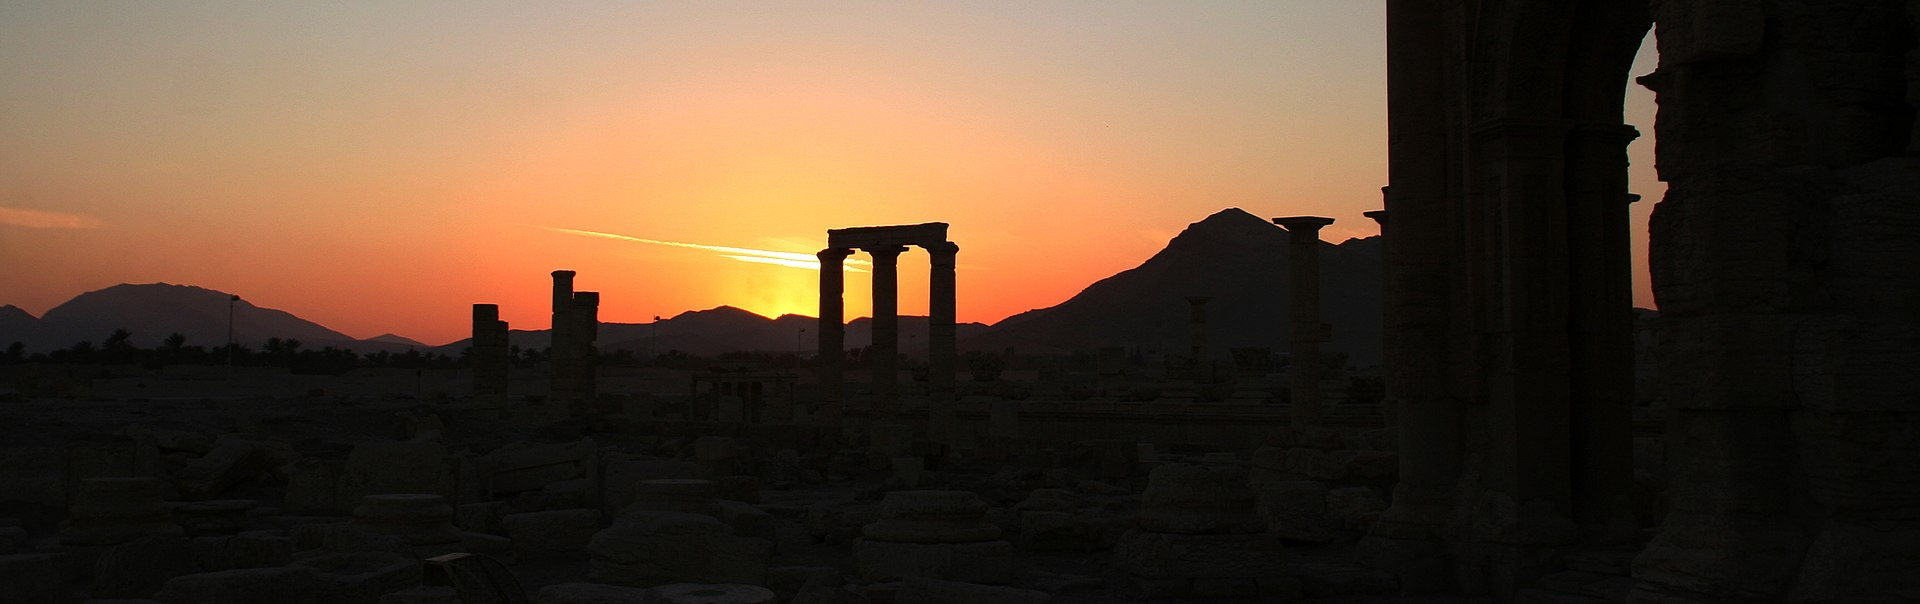 https://upload.wikimedia.org/wikipedia/commons/thumb/c/cd/Palmyra_Sunset.jpg/1920px-Palmyra_Sunset.jpg